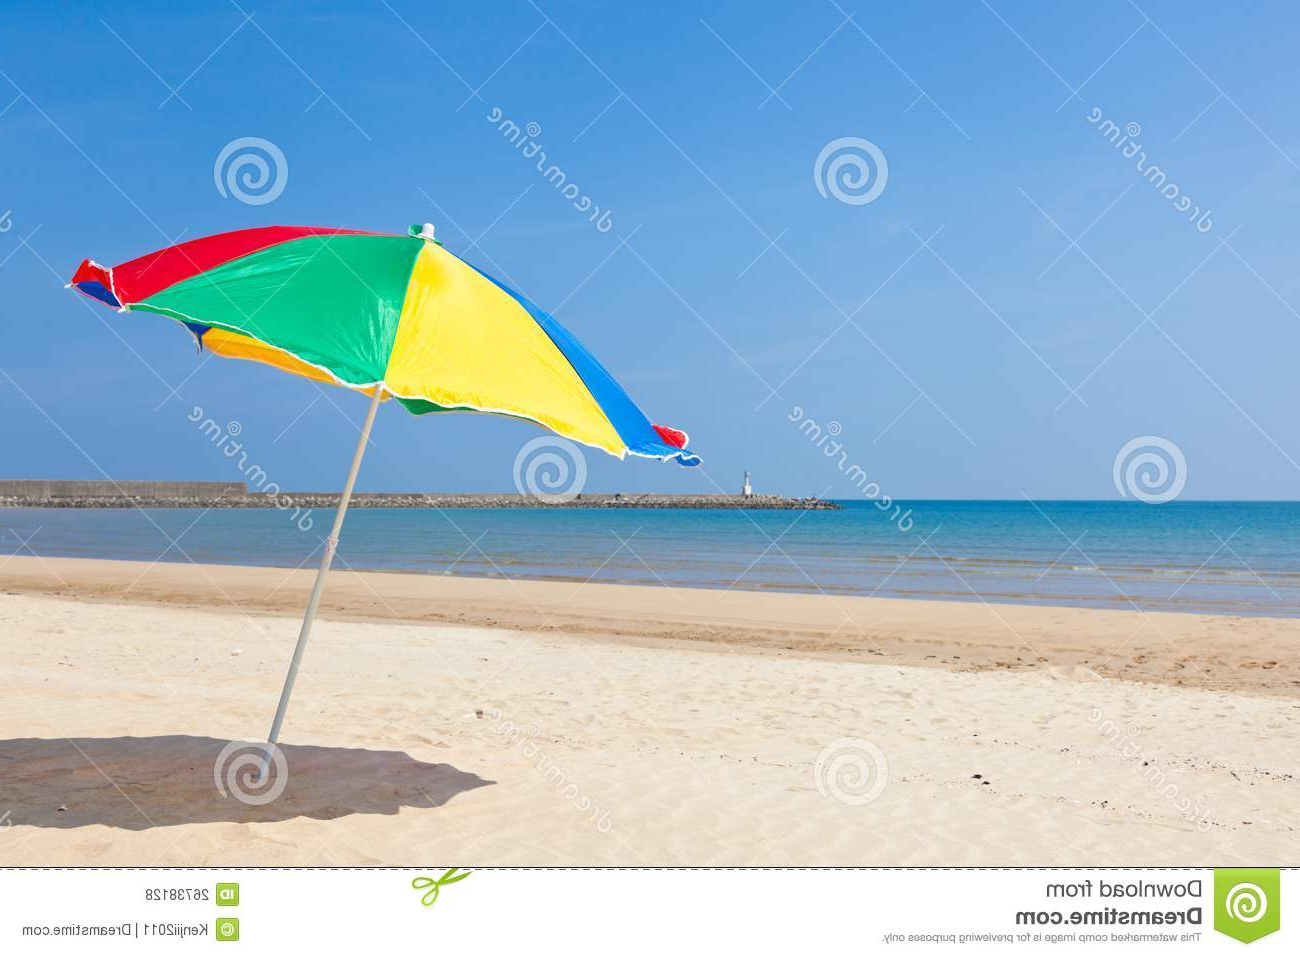 Seaside Beach Umbrella Stock Photo (View 11 of 20)